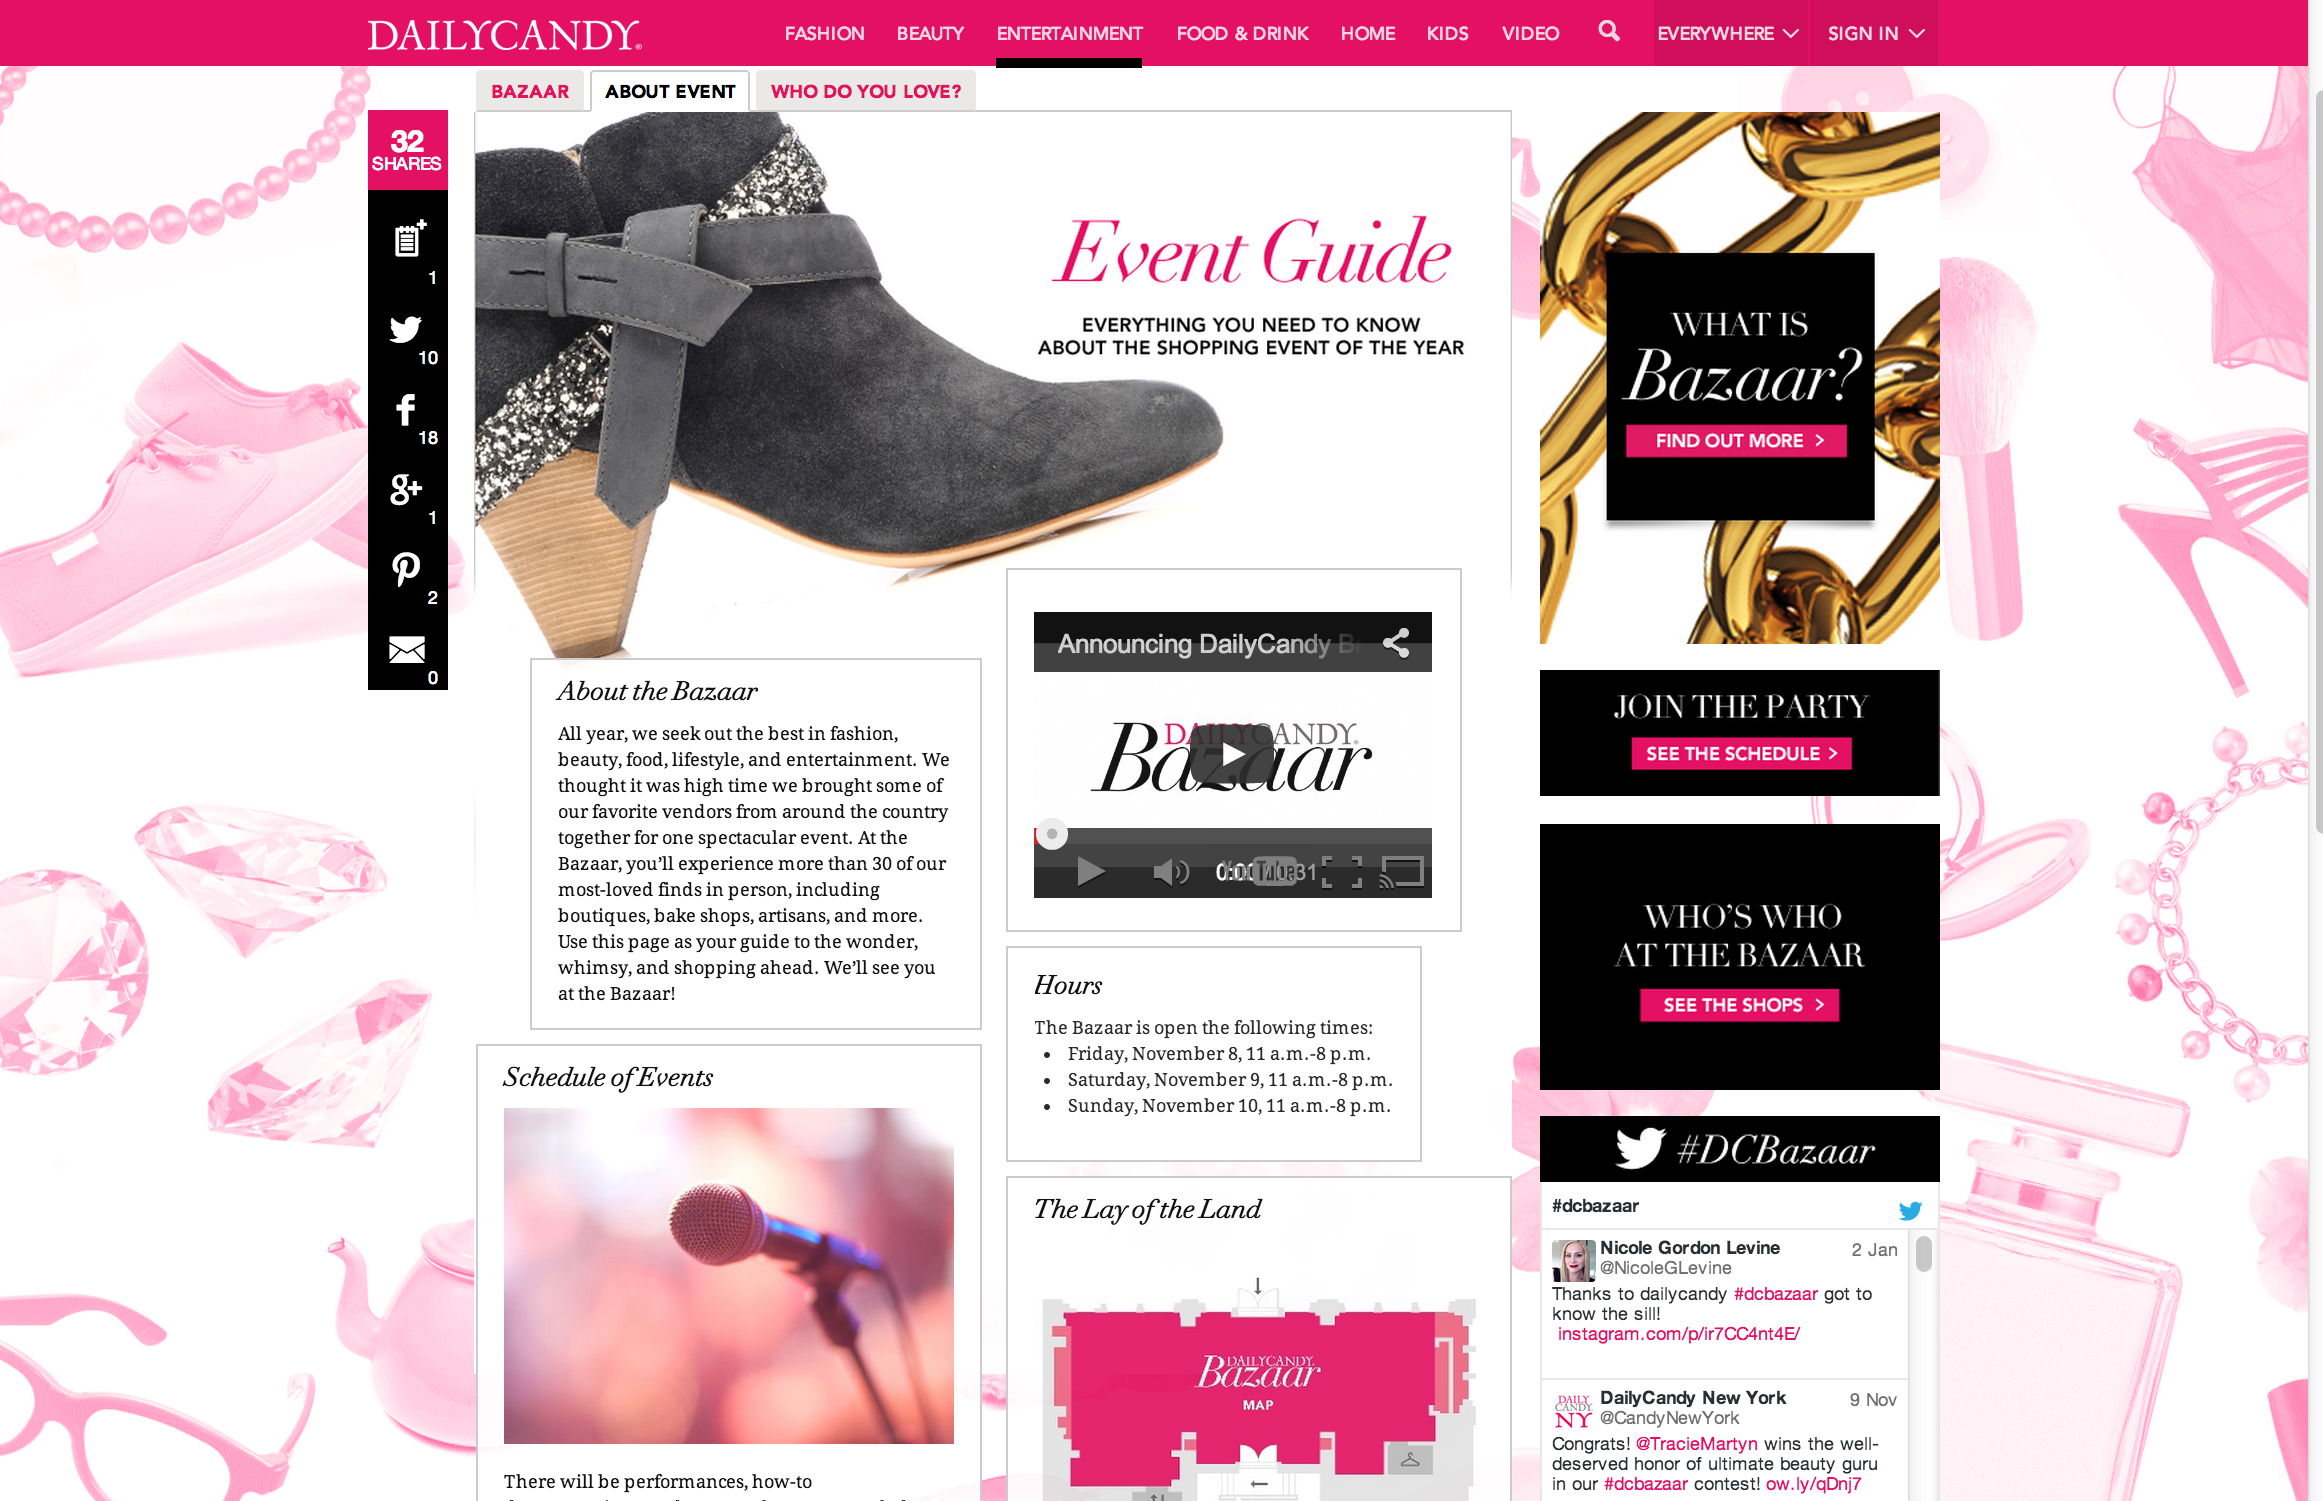 DailyCandy Bazaar 2013 Event Information   Everywhere   DailyCandy.png